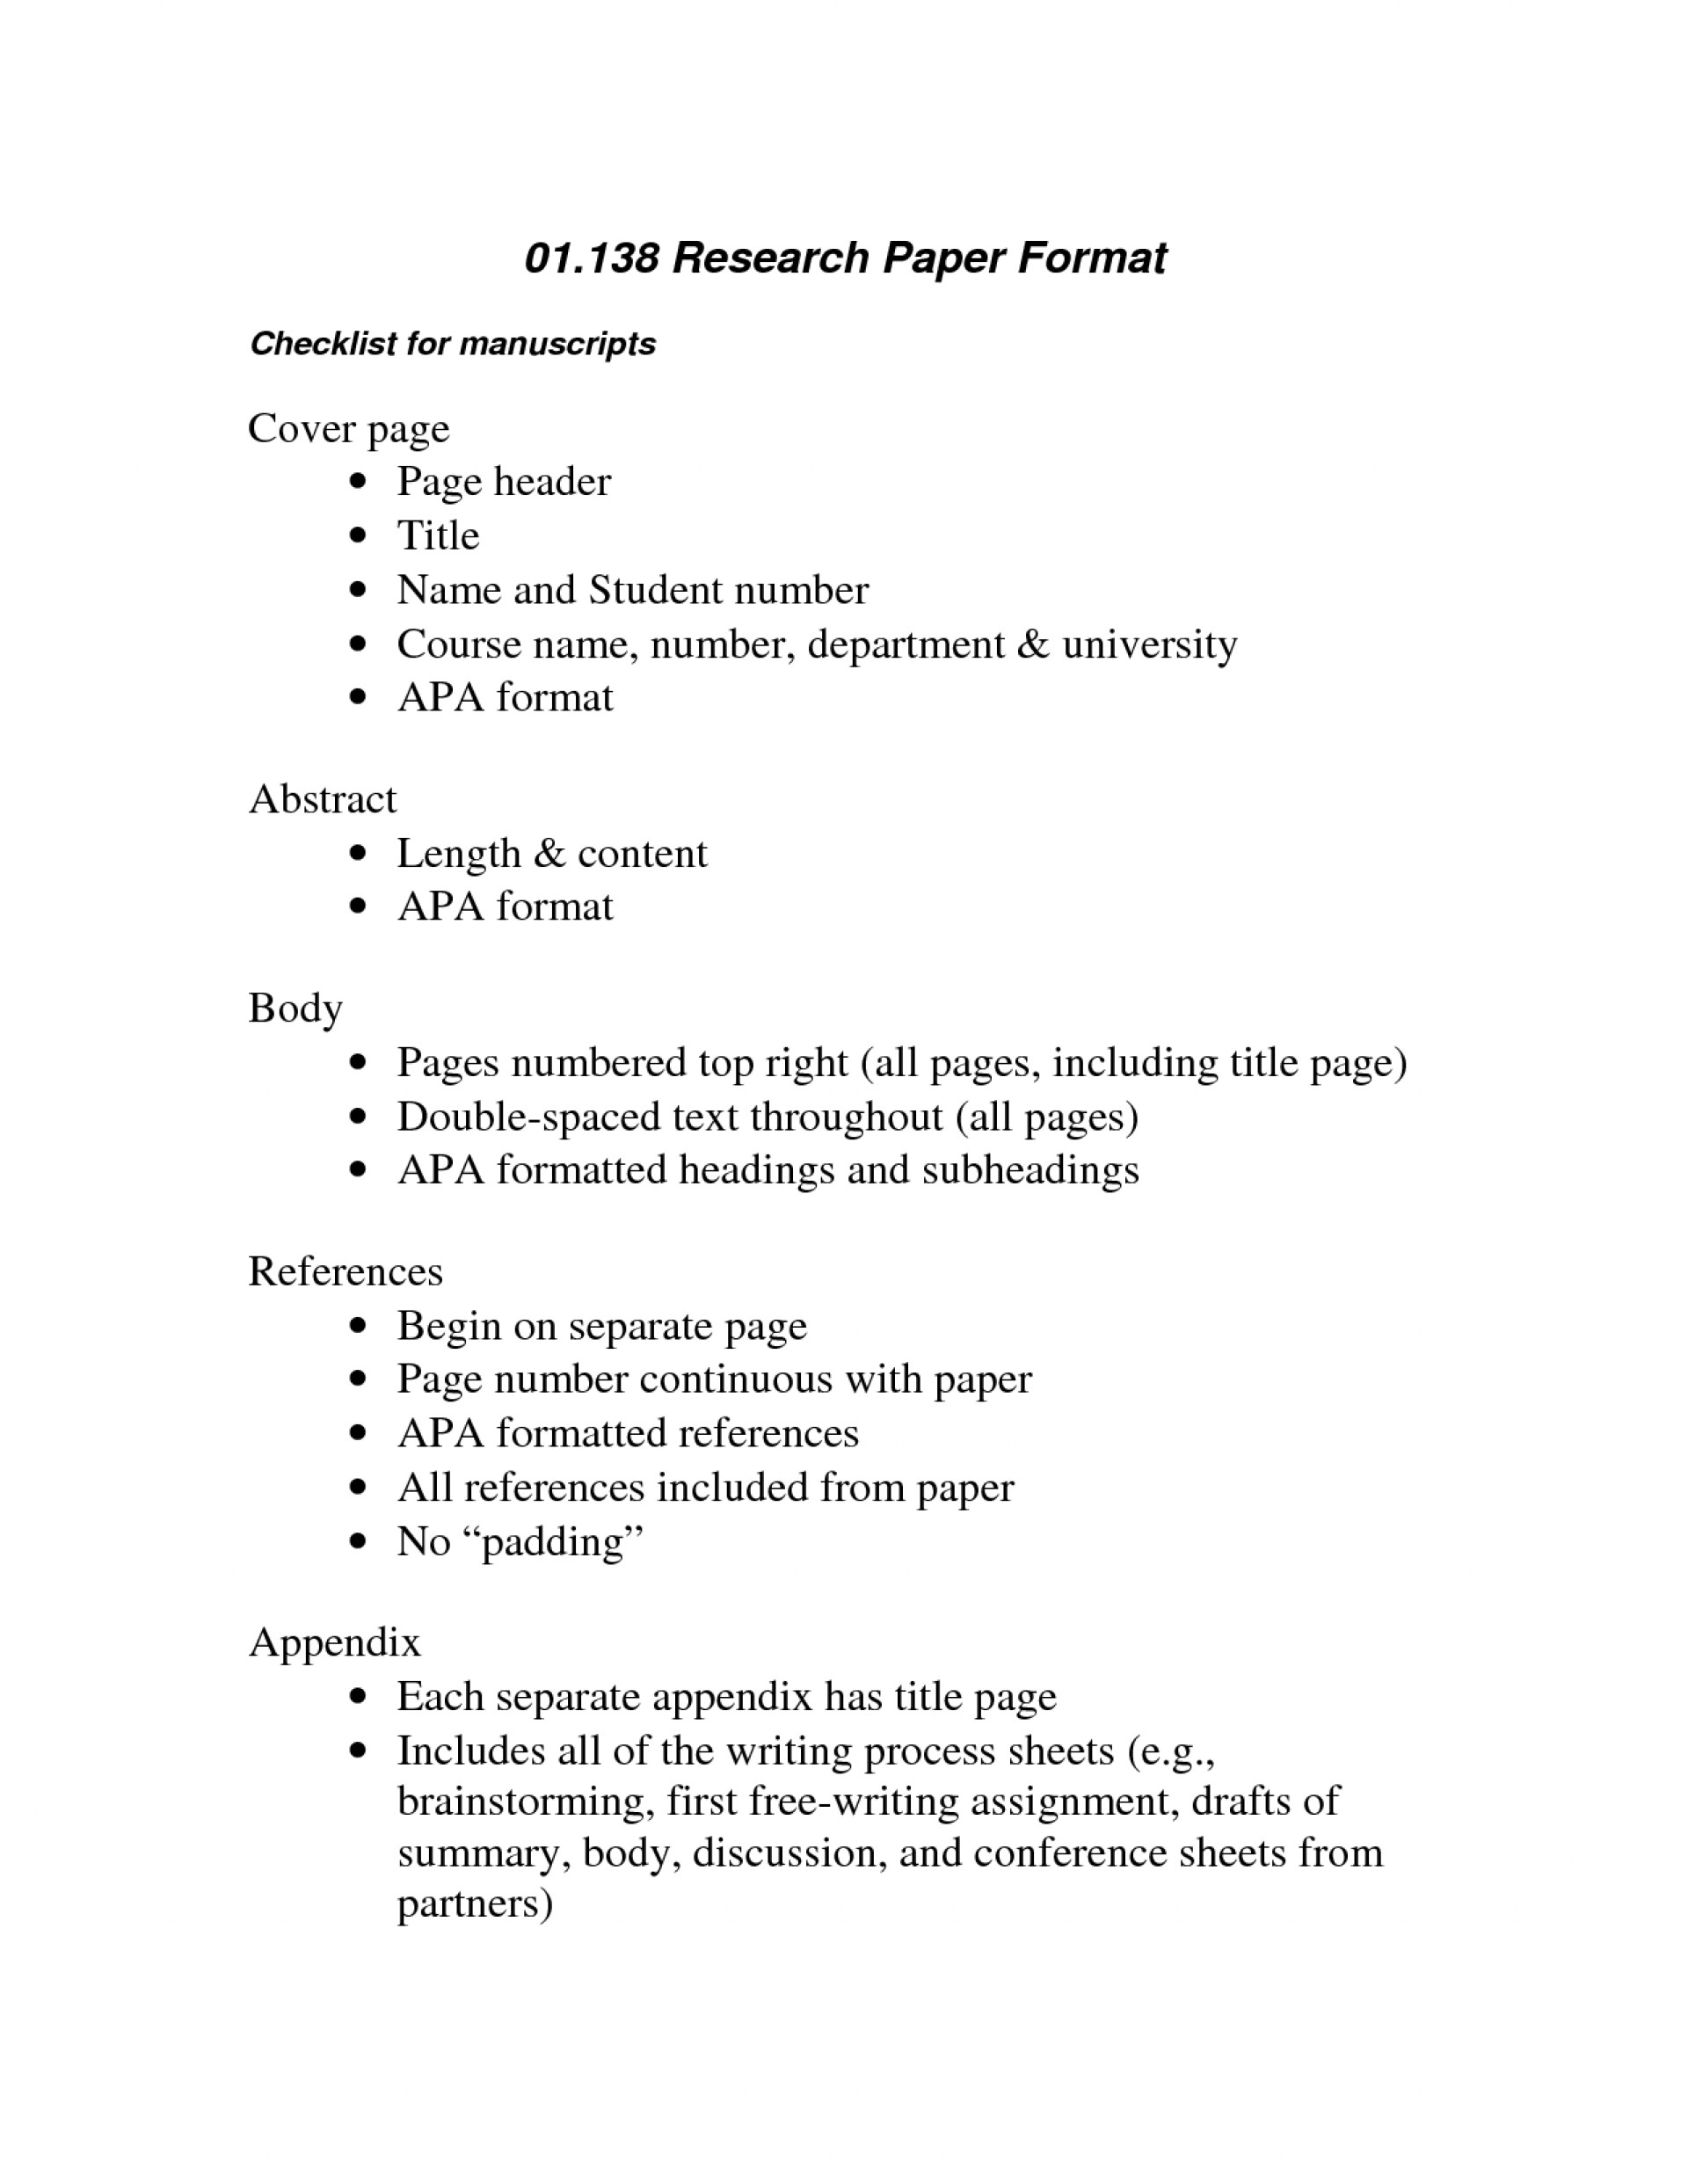 003 Apa Writing Research Paper Surprising Title Page Example Format 2015 Outline Sample 1920